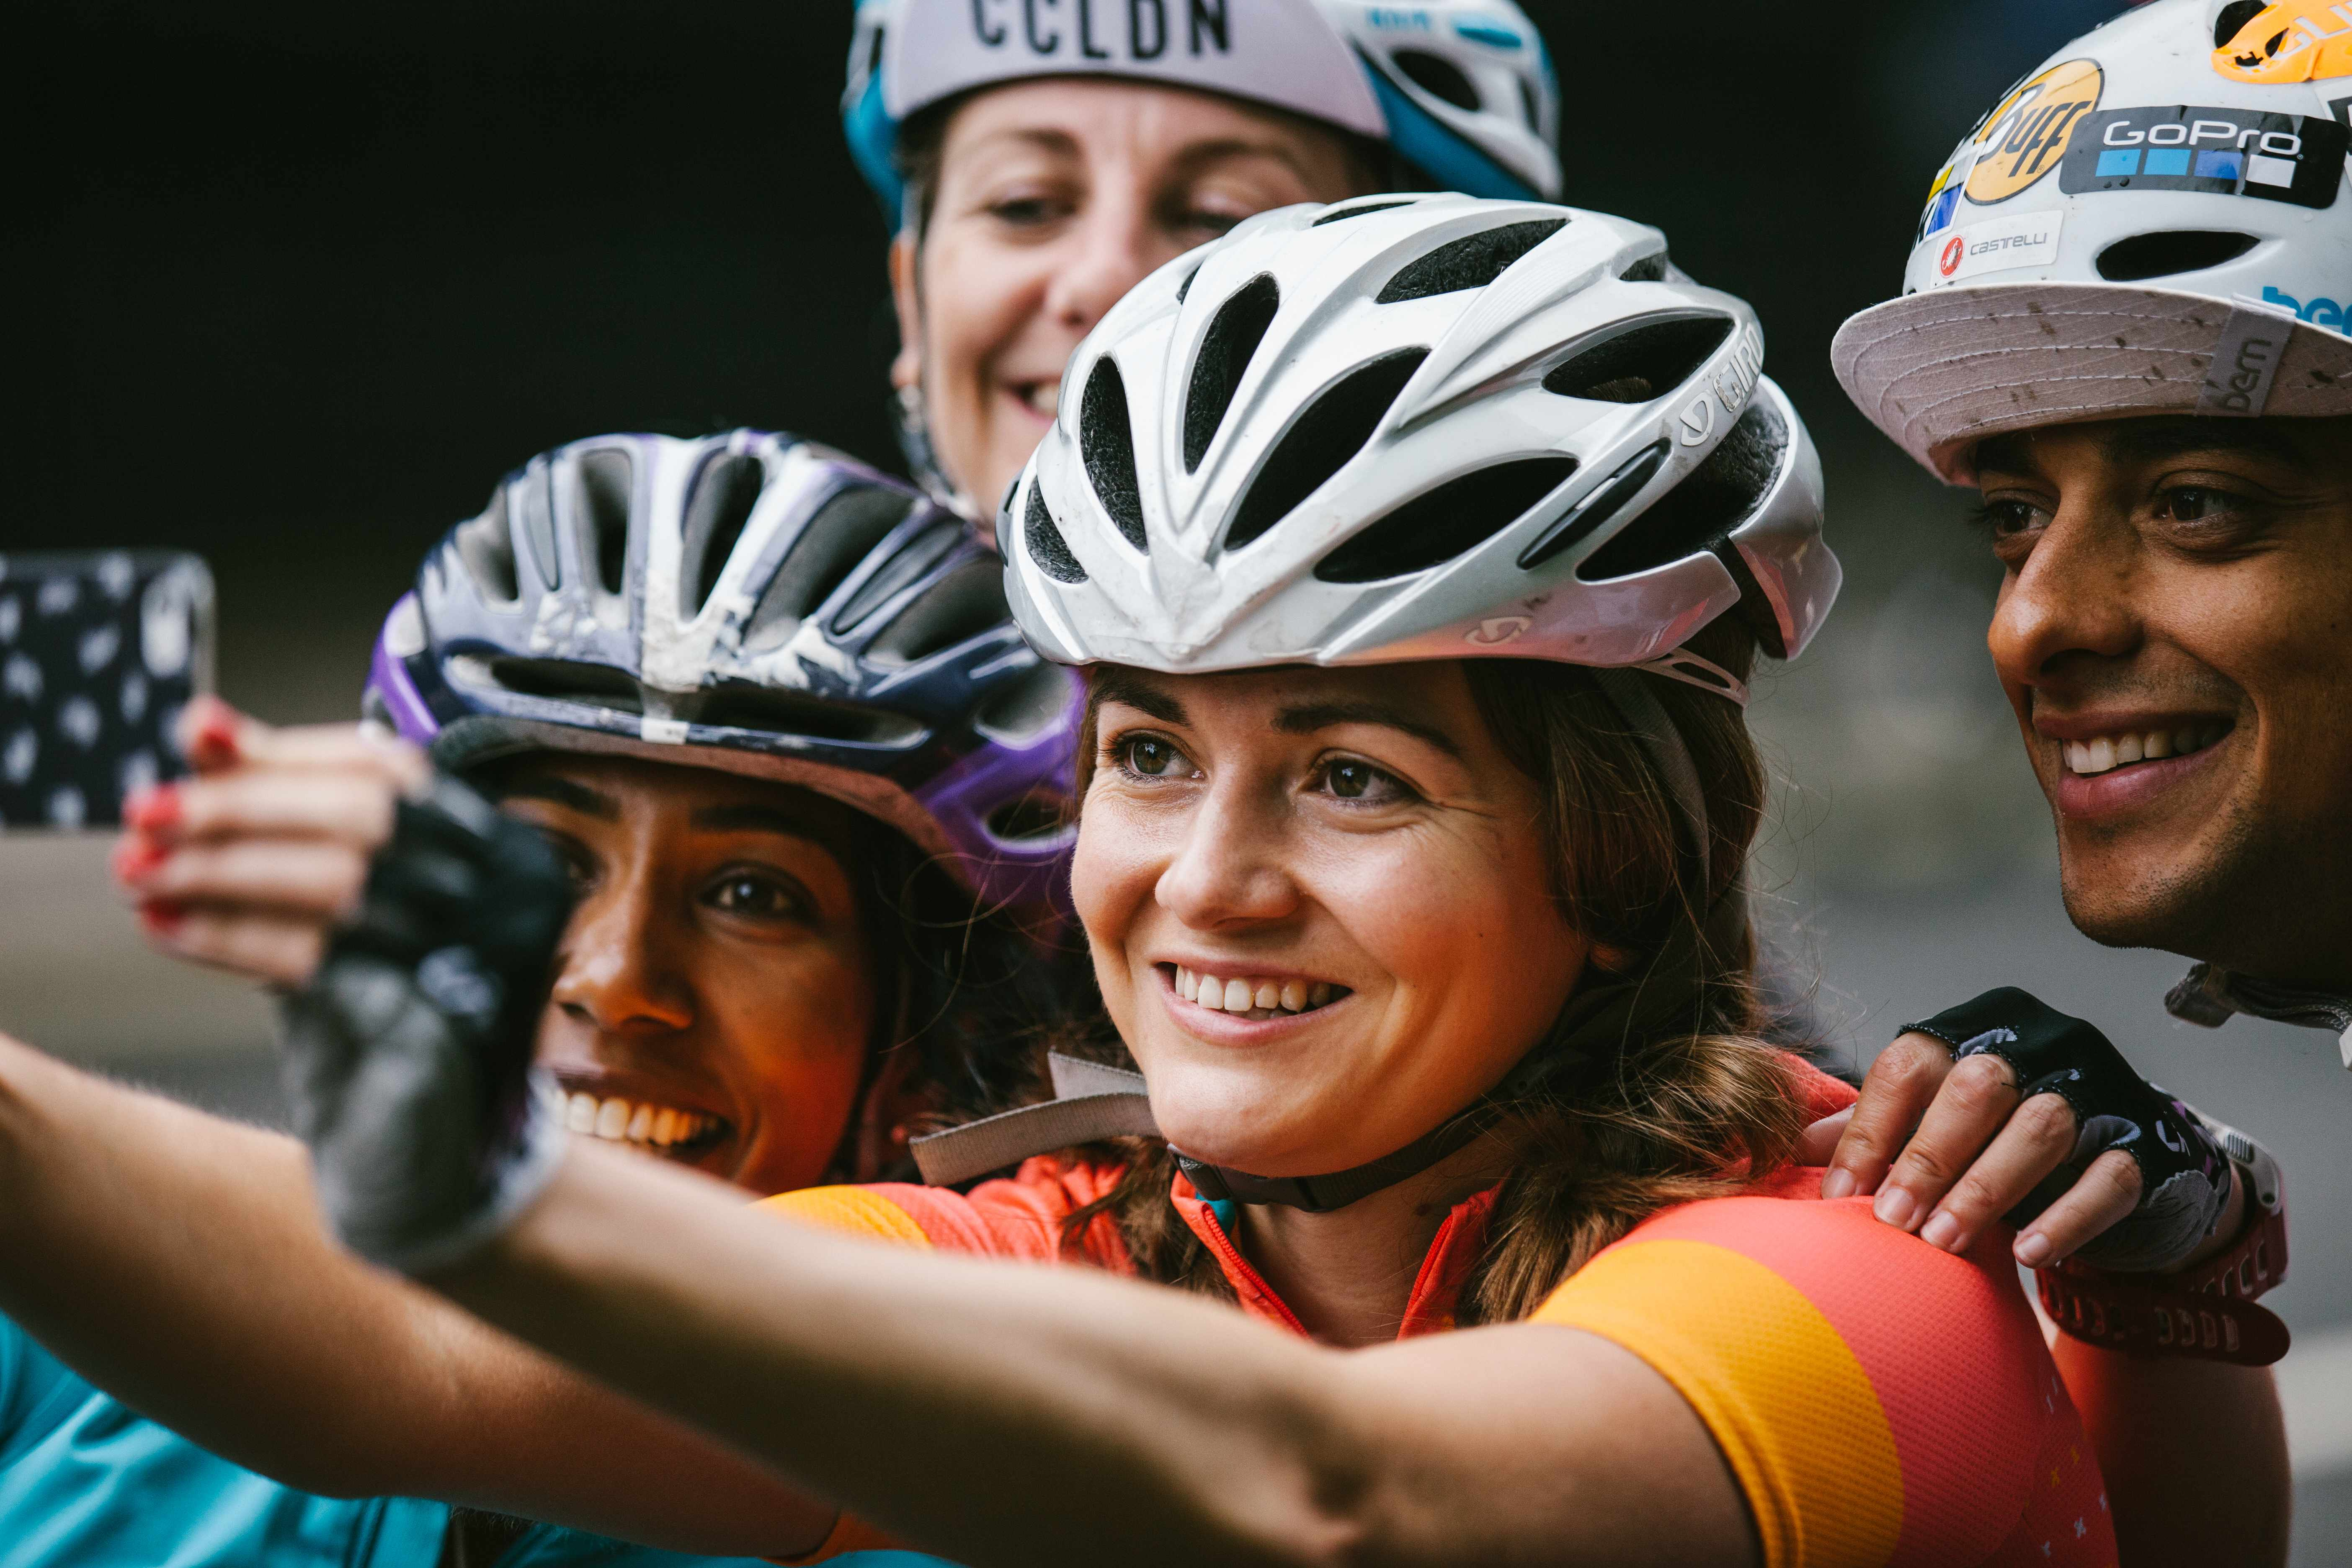 Three female cyclists posing for a selfie